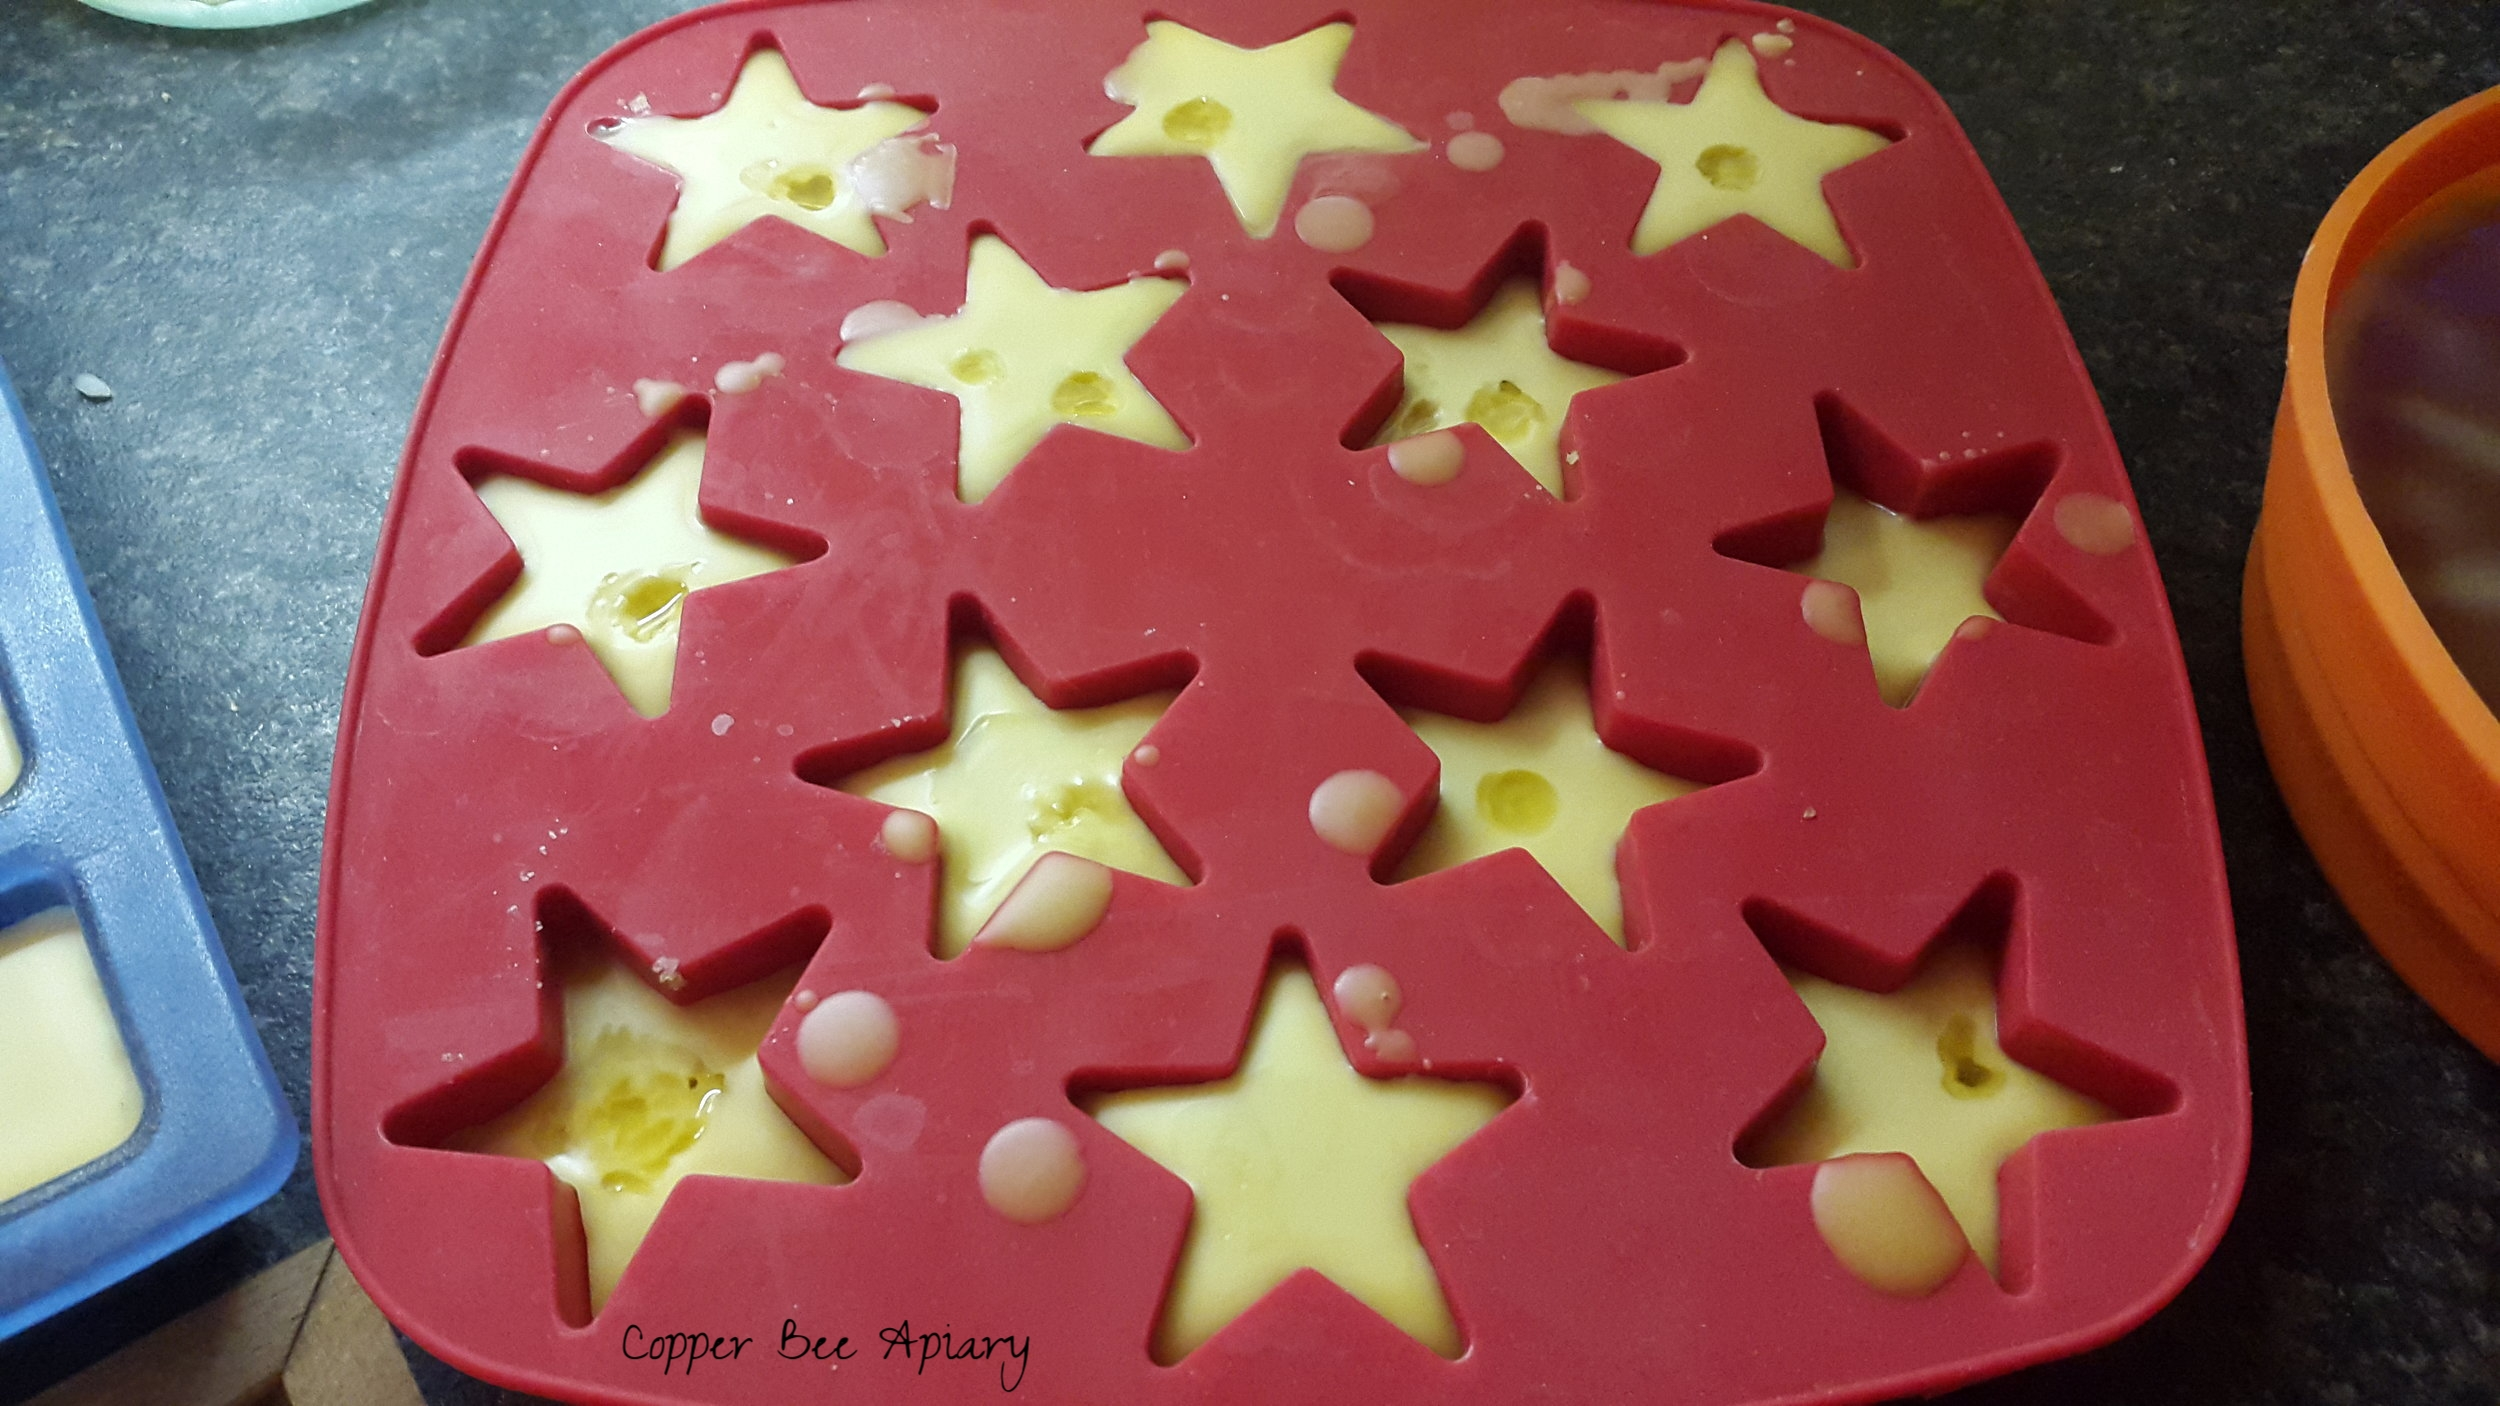 Moulded stars with oil droplets